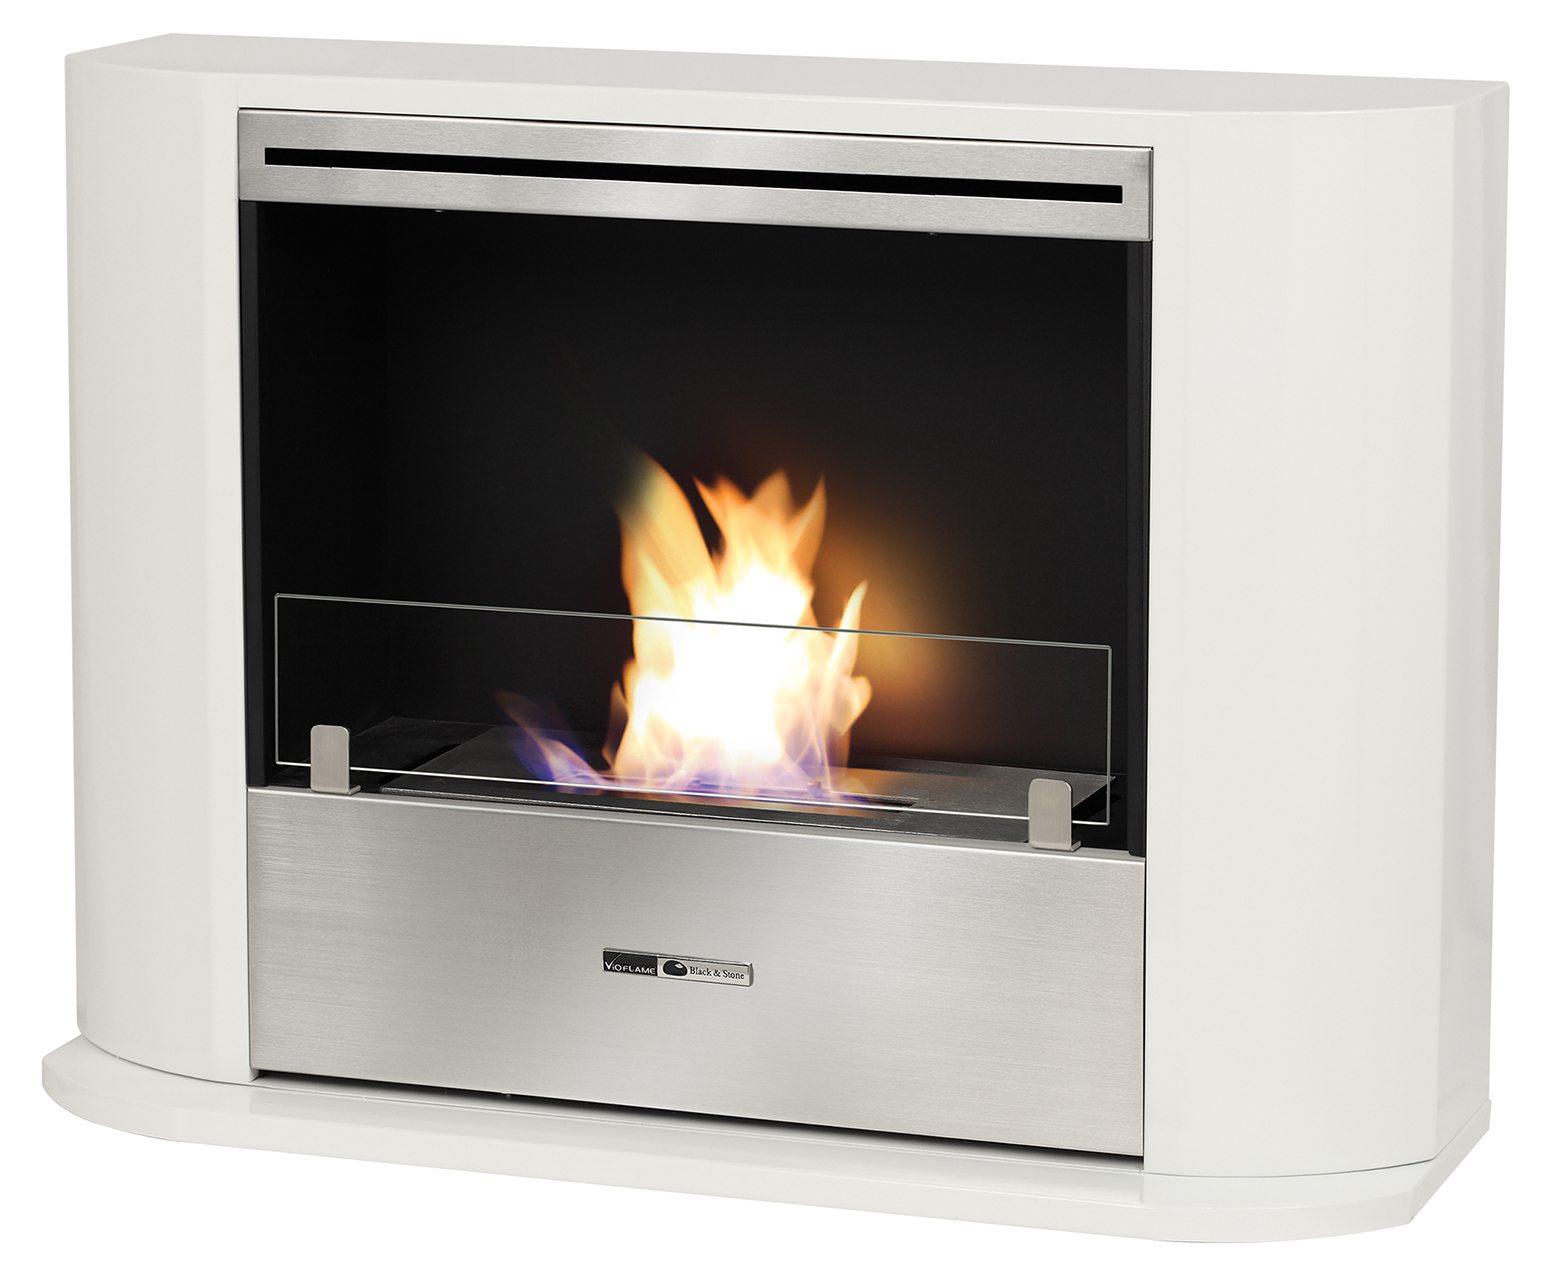 vioflame classique 3500 white vfc3500w bio ethanol fireplace airdry shop. Black Bedroom Furniture Sets. Home Design Ideas